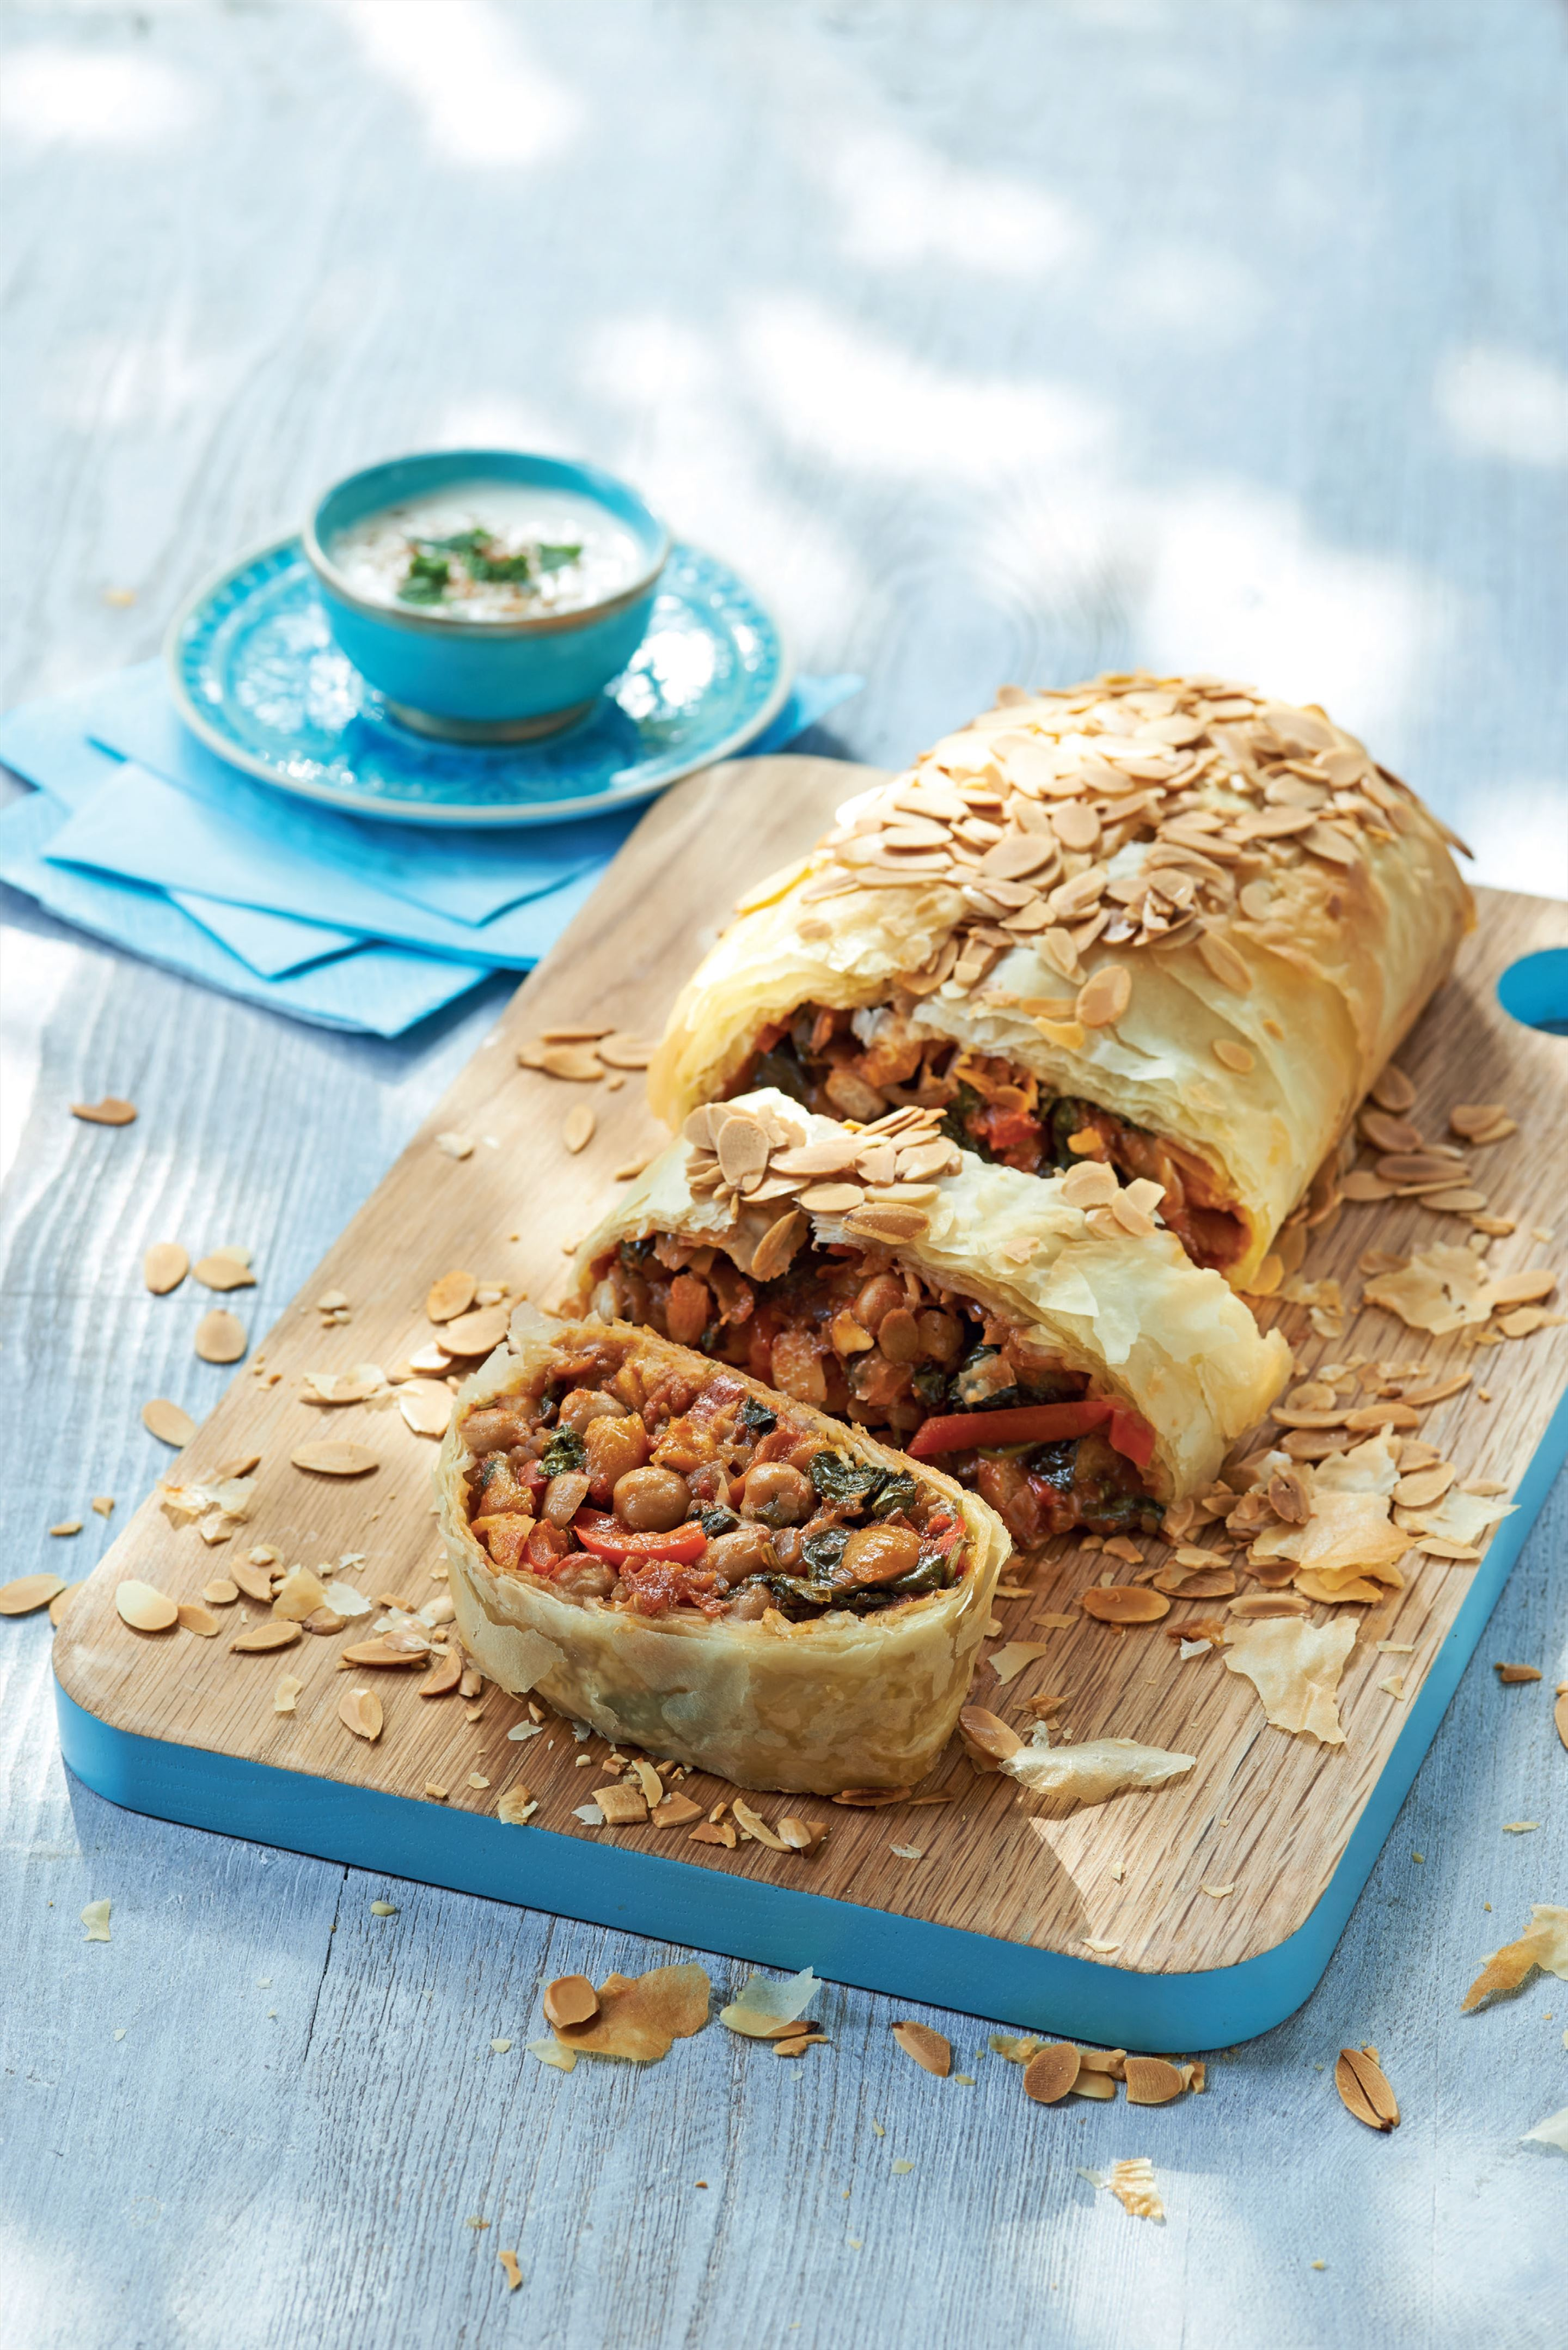 Moroccan spinach and chickpea strudel